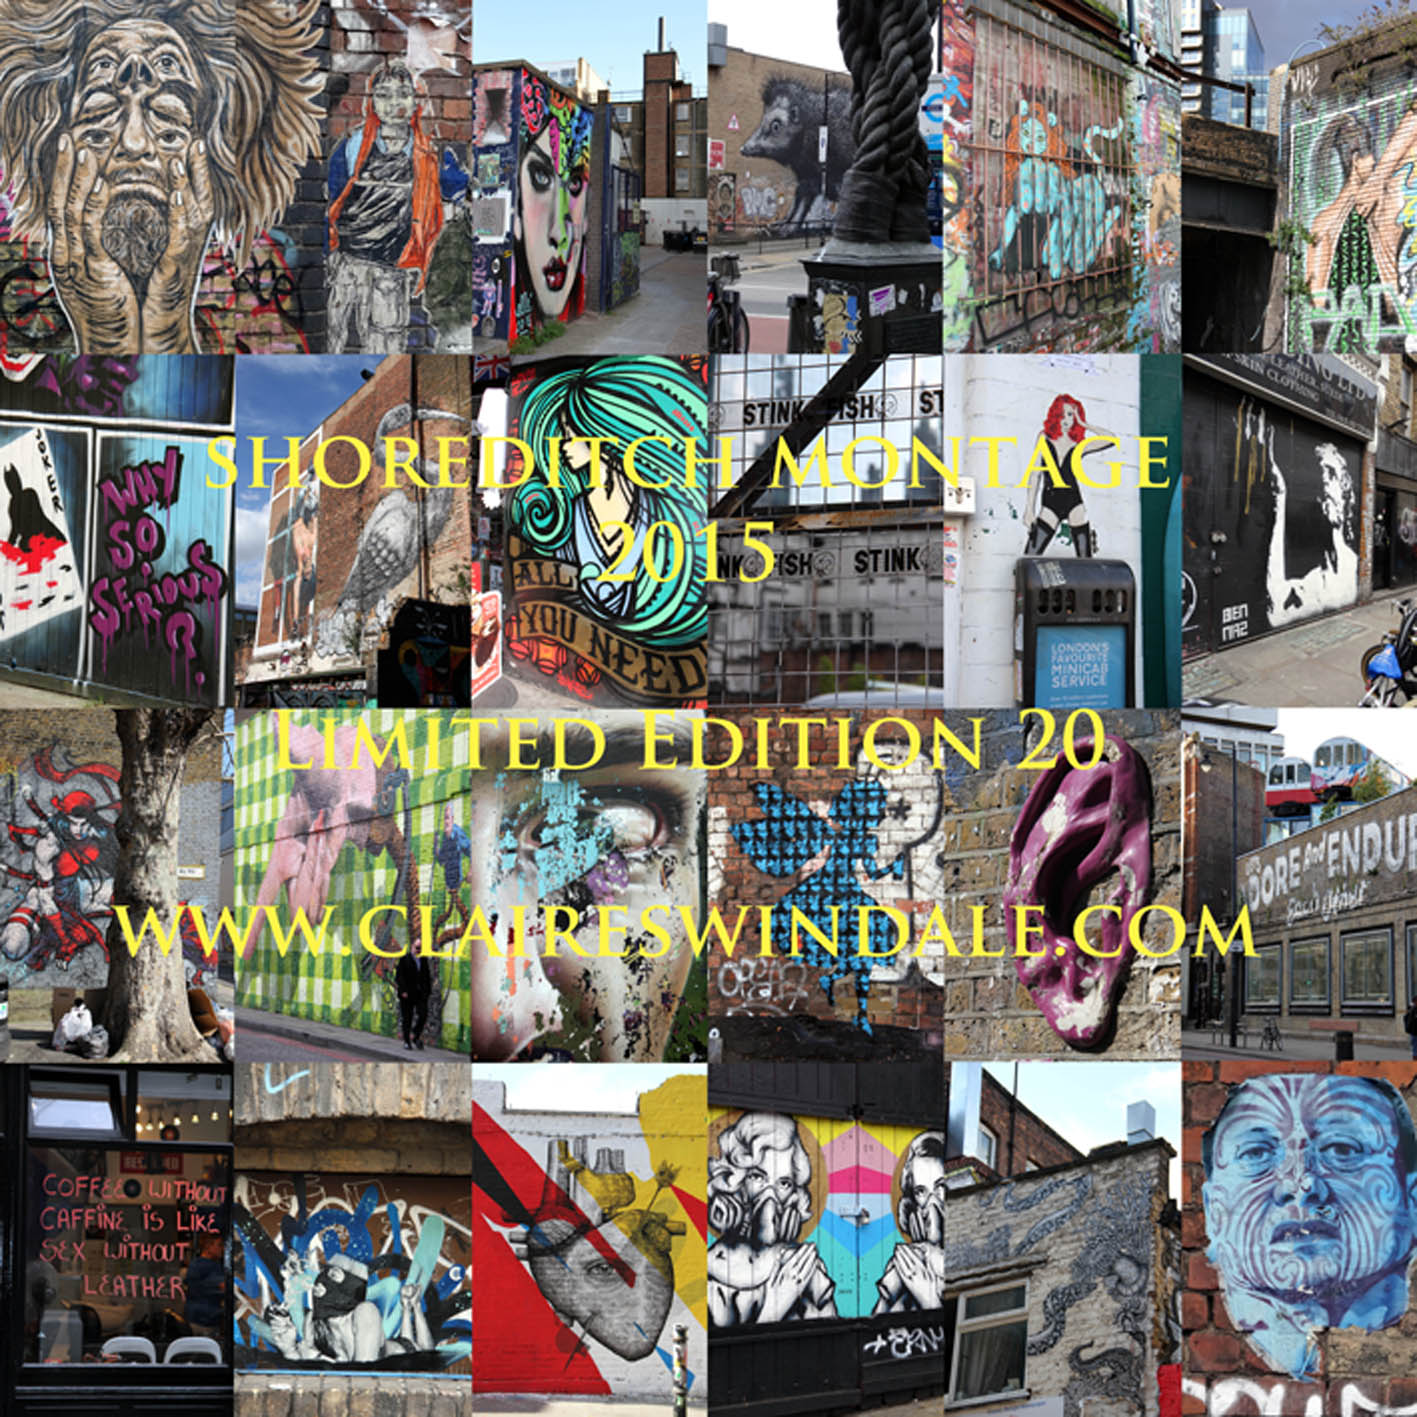 shoreditch, shoreditch art, shoreditch montage